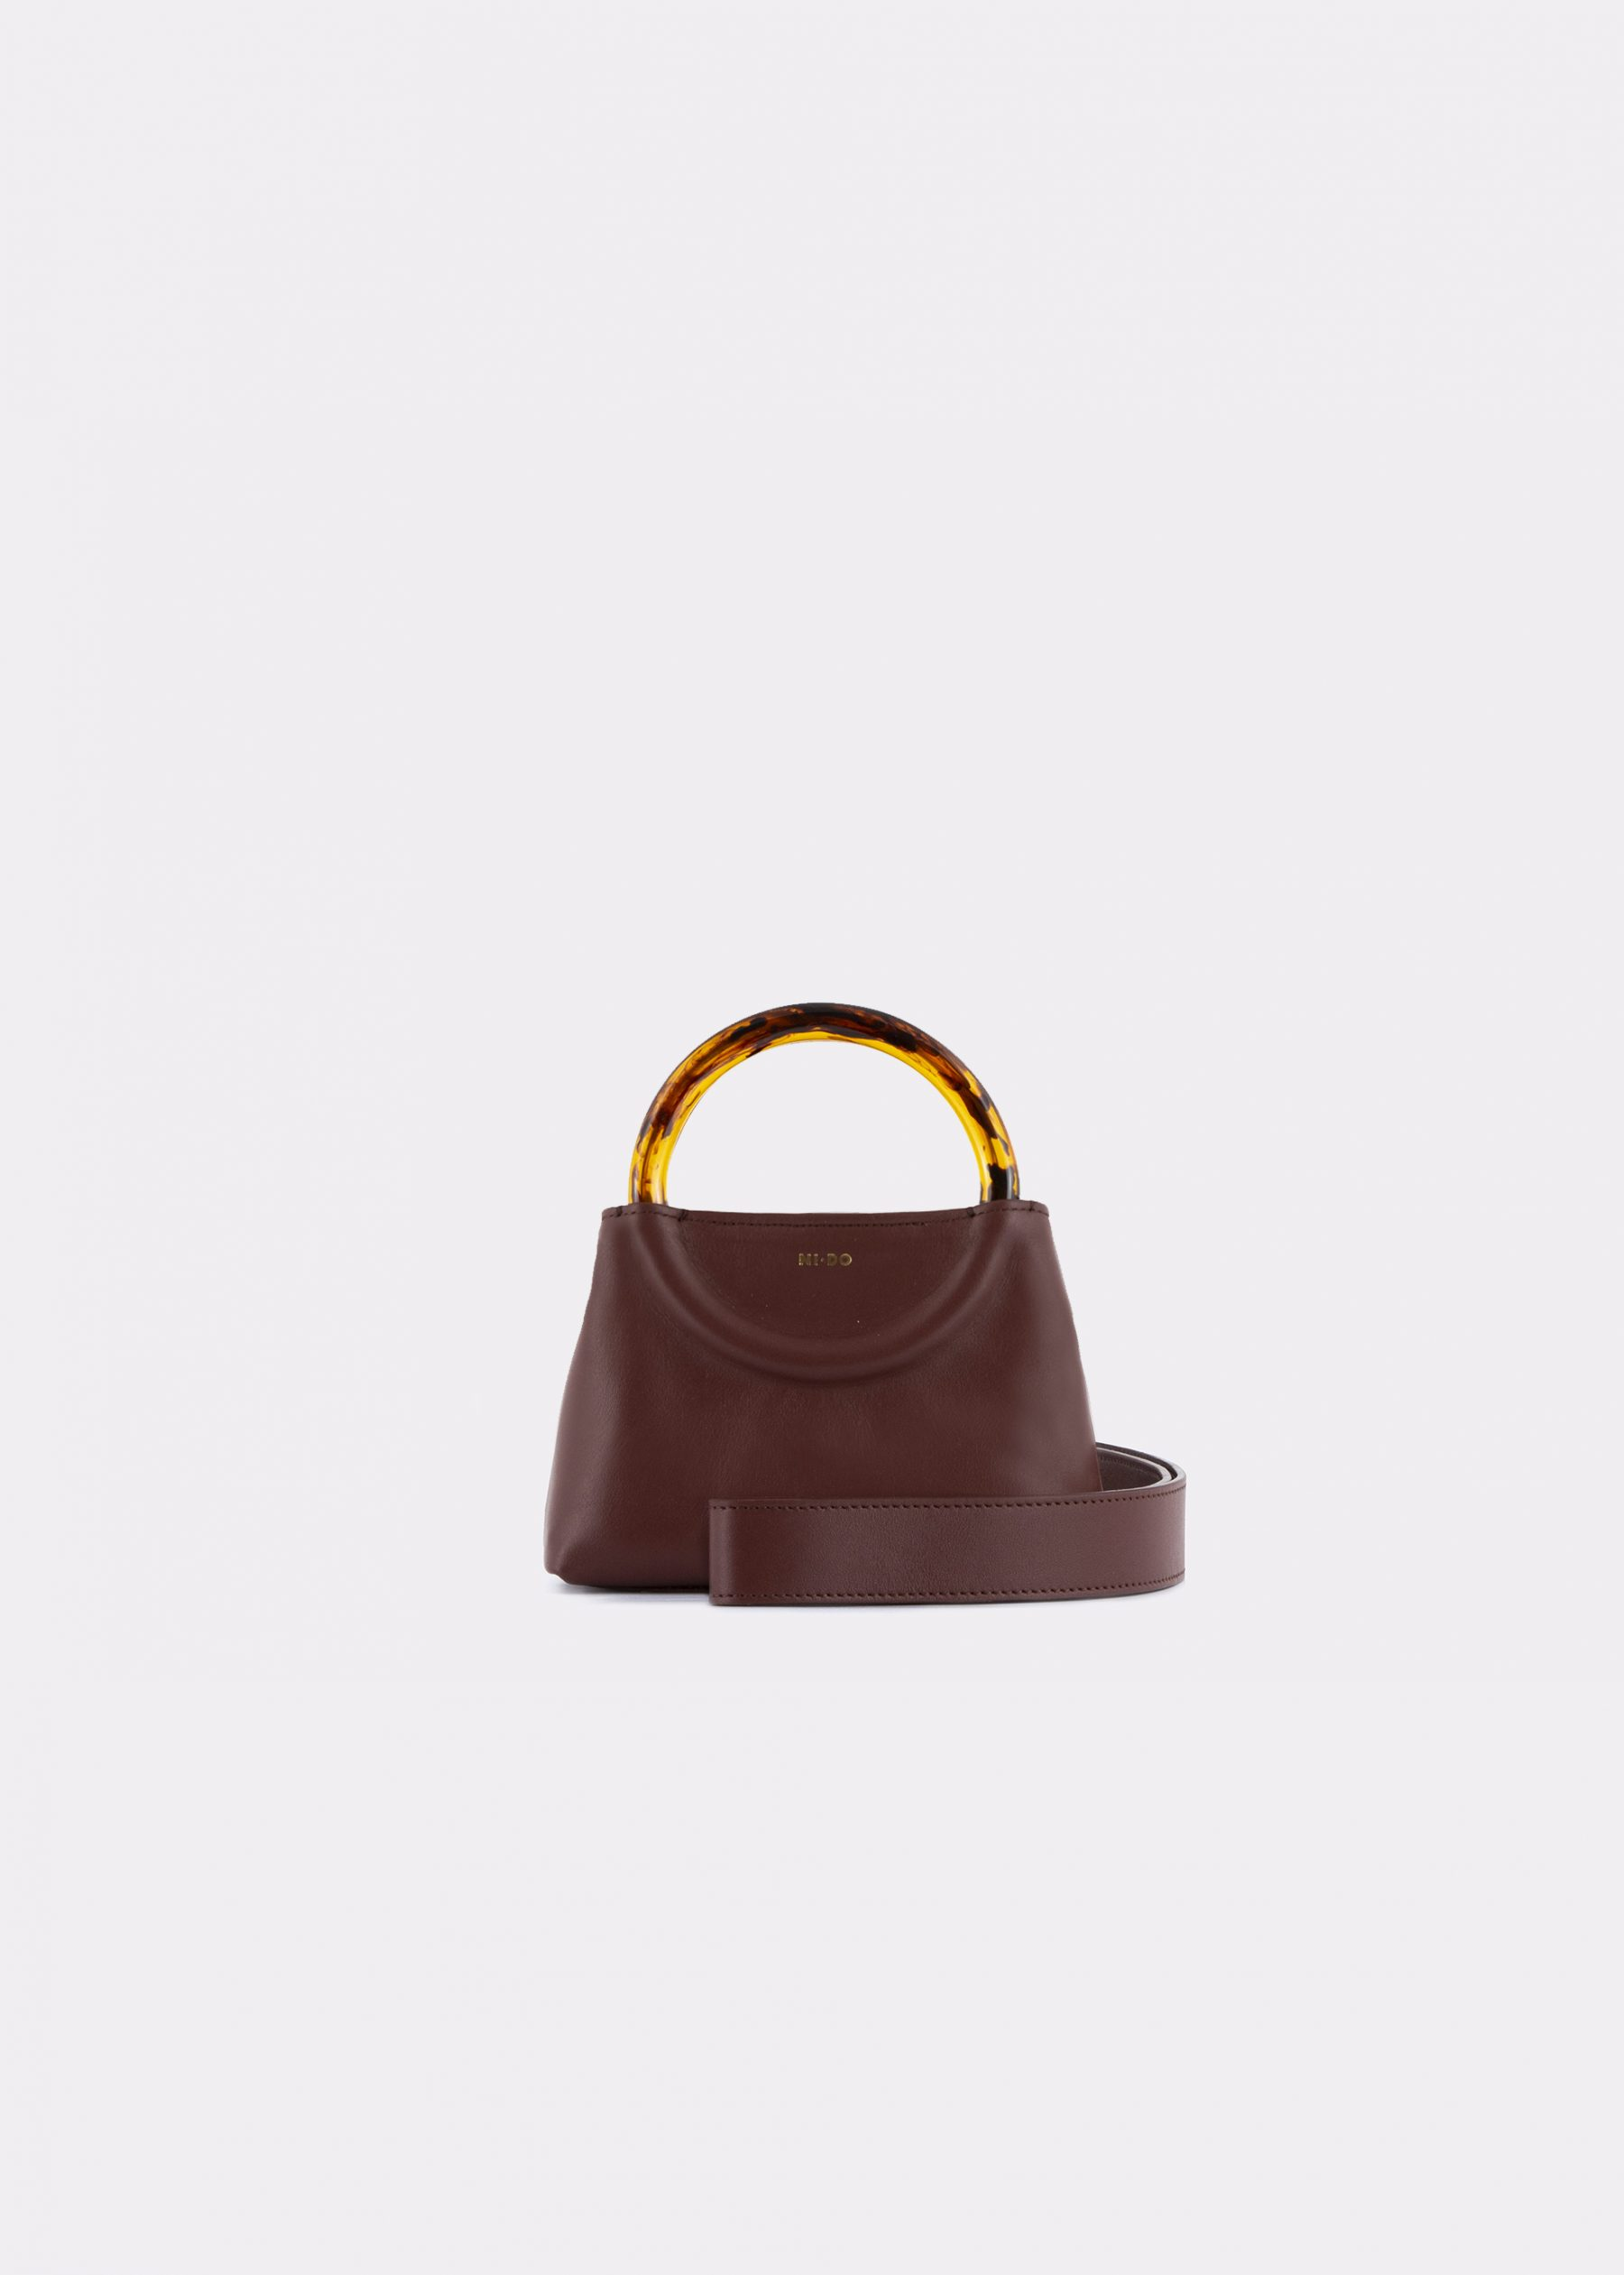 NIDO Bolla Micro bag chestnut_shoulderstrap view